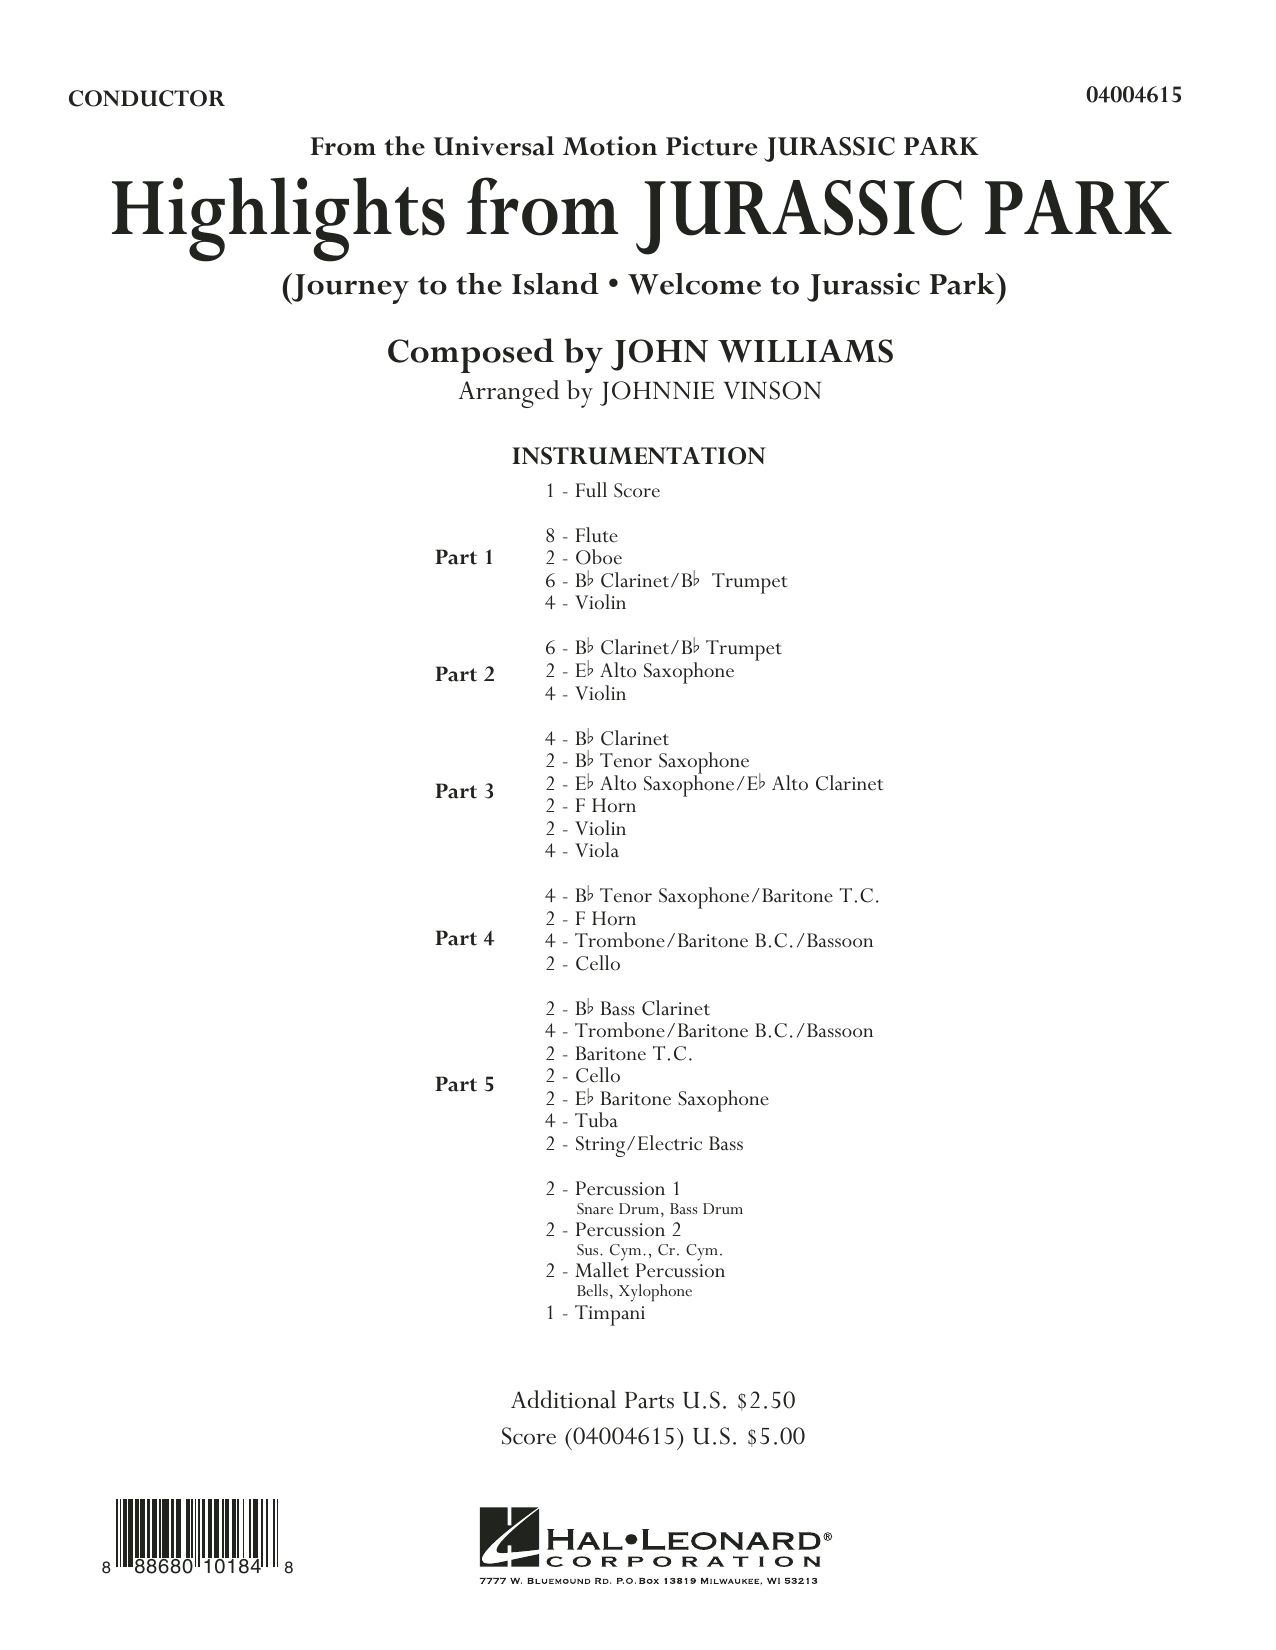 Highlights from Jurassic Park (COMPLETE) sheet music for concert band by Johnnie Vinson